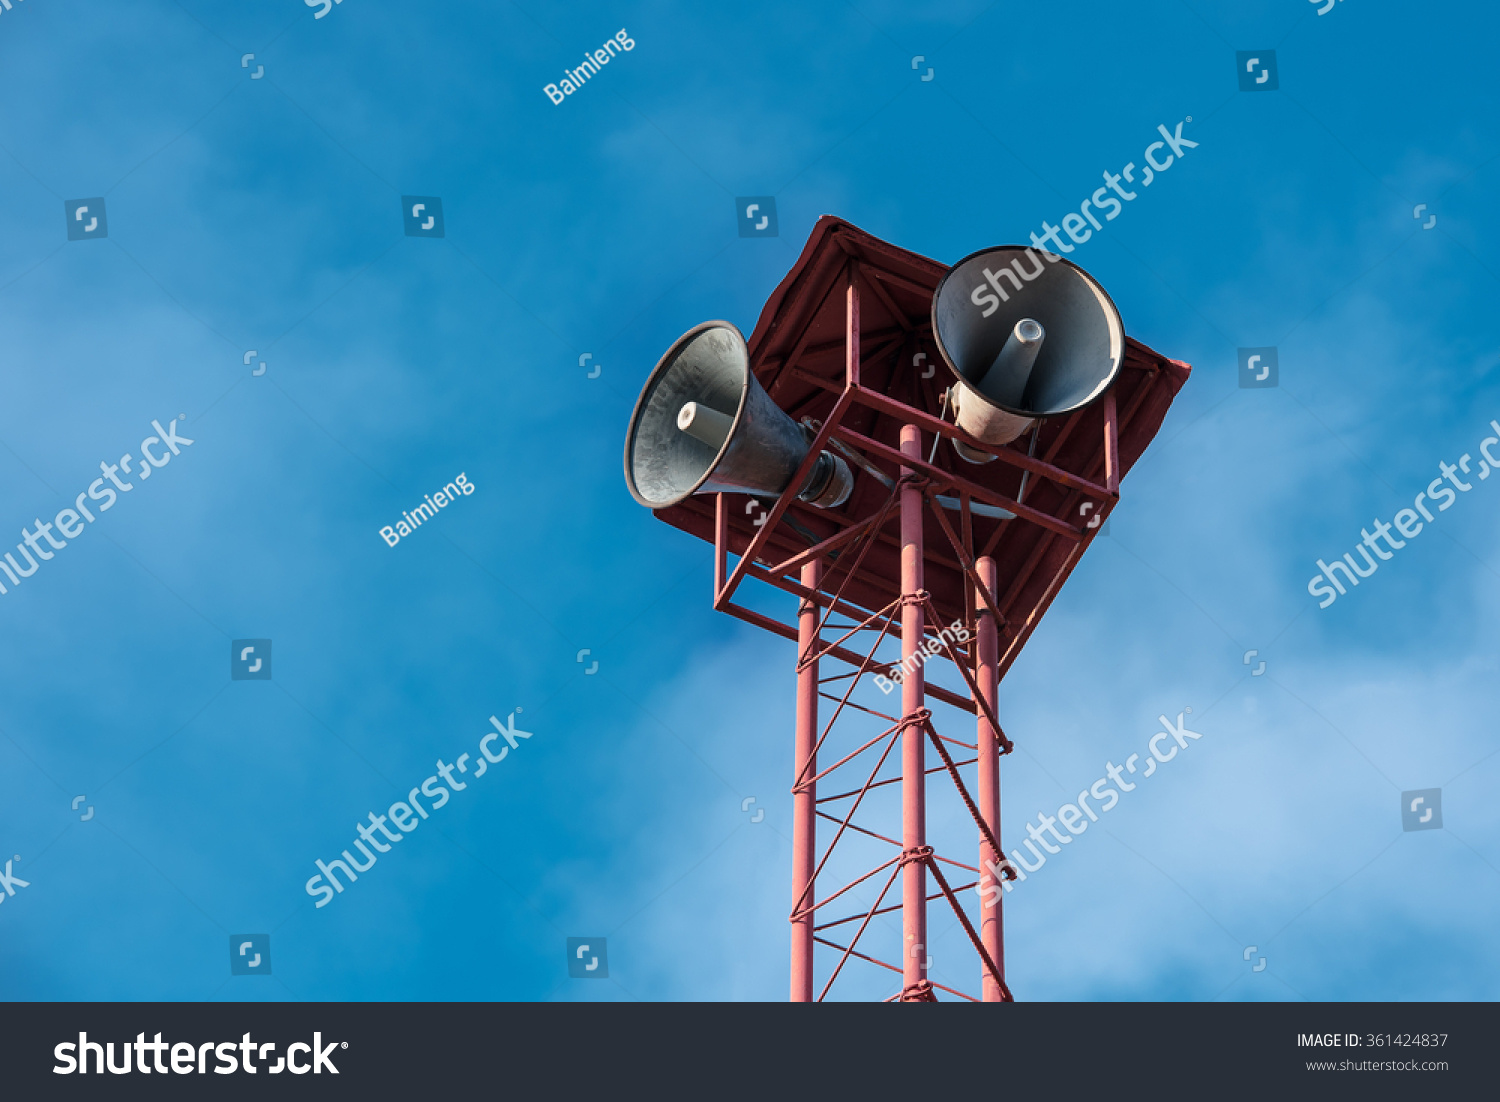 hight resolution of vintage horn speaker for public relations with blue sky